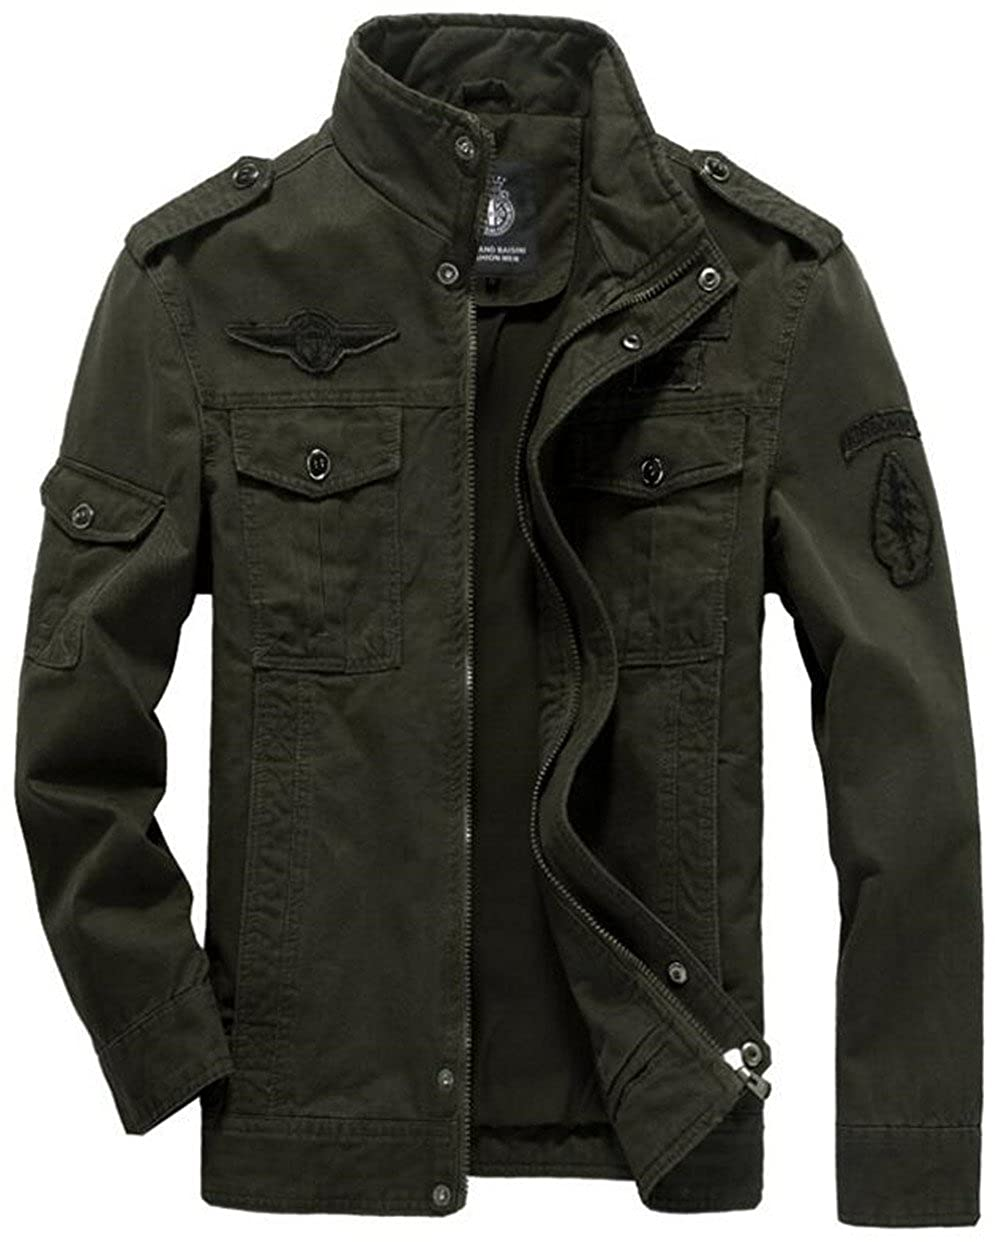 Jinmen Men's Fashion Cotton Jackets Military Air Force Bomber Jackets